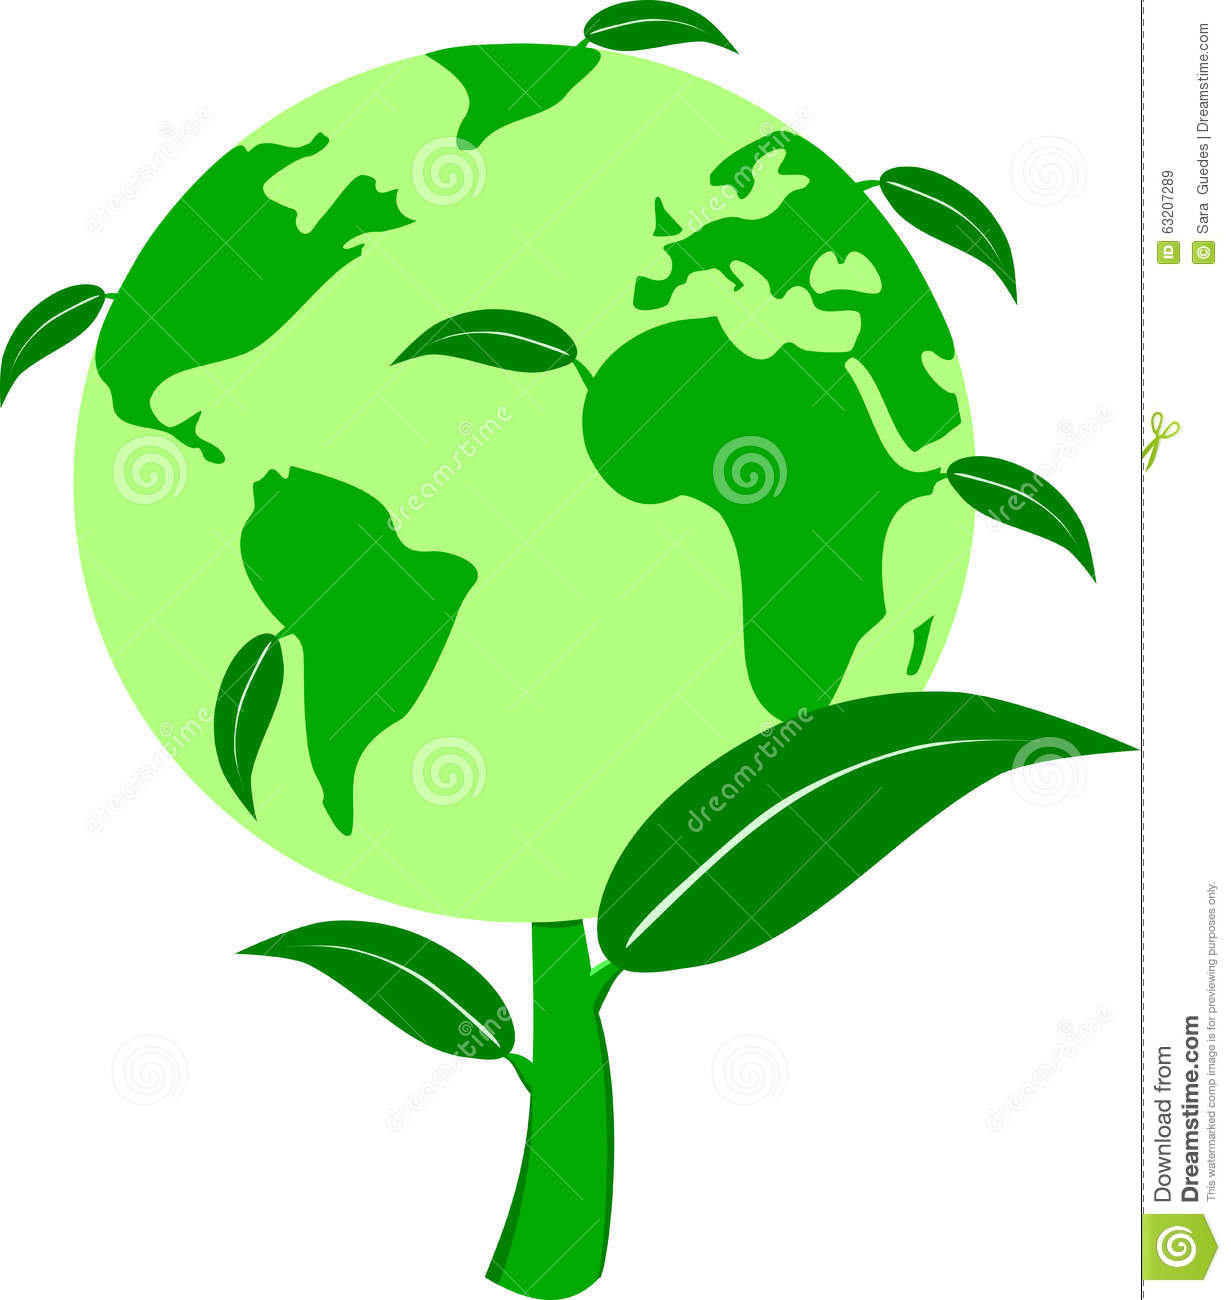 Green World Plant Stock Vector - Image: 63207289